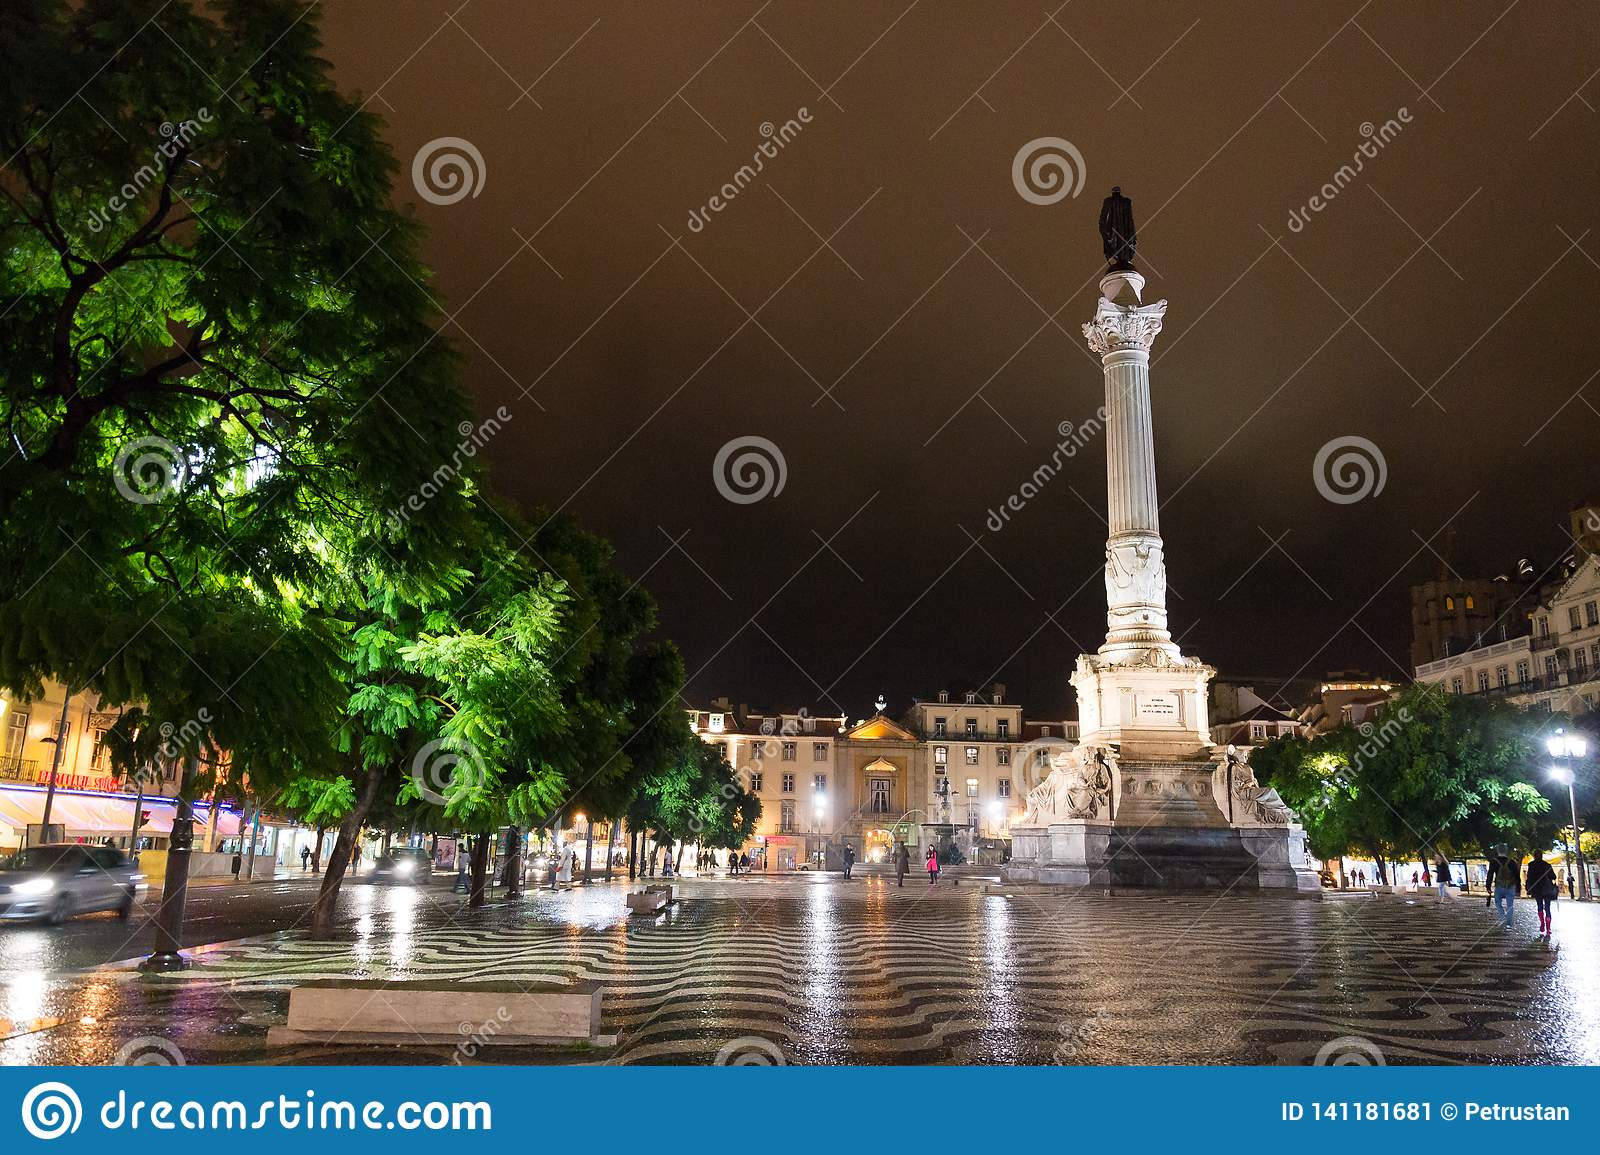 Night scene of Rossio Square, Lisbon, Portugal with one of its decorative fountains and the Column of Pedro IV